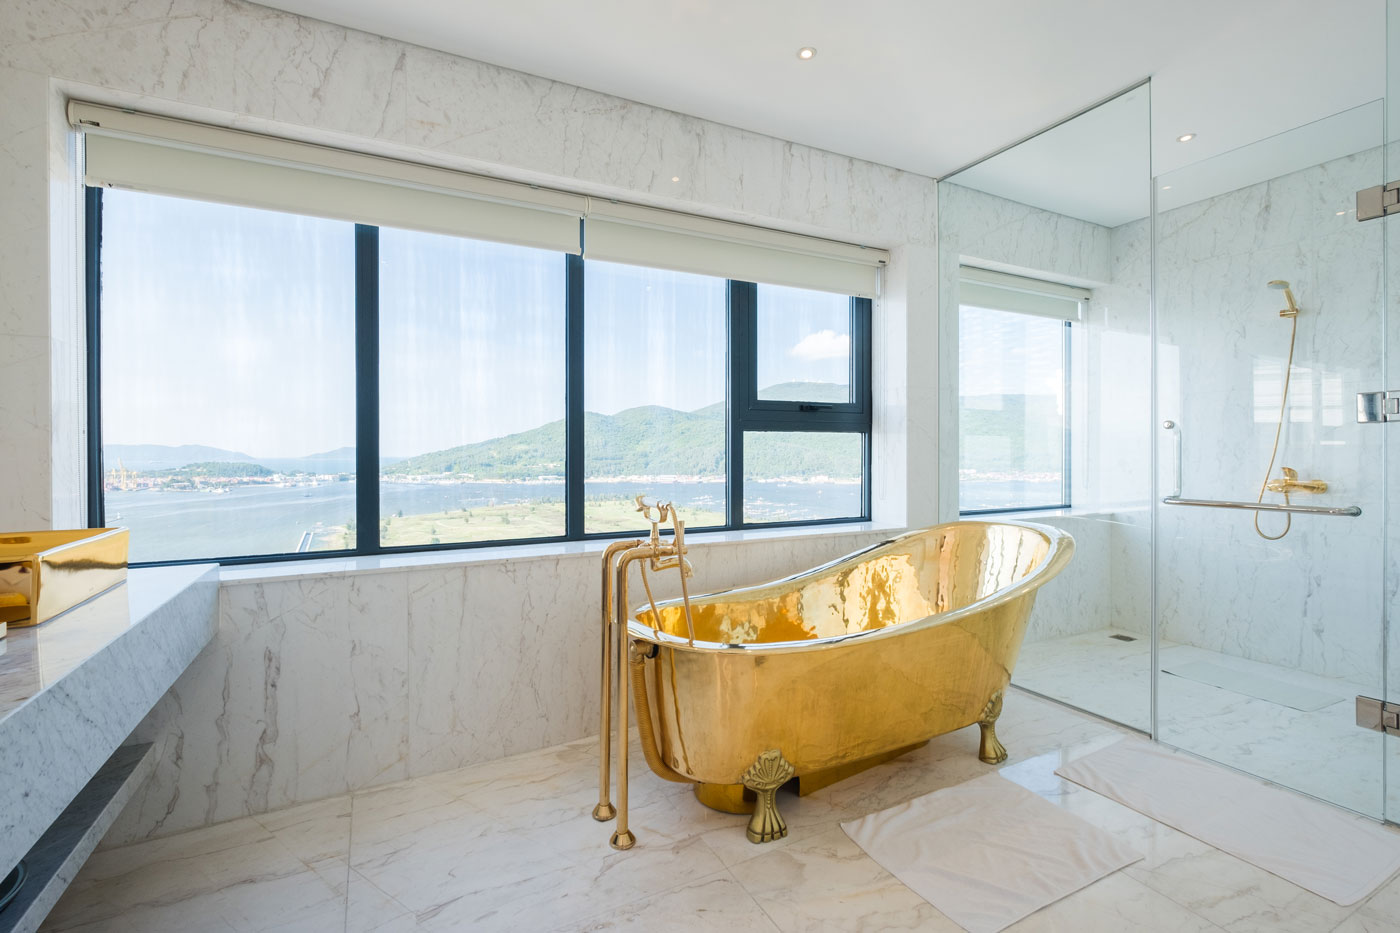 Danang Golden Bay Bathroom